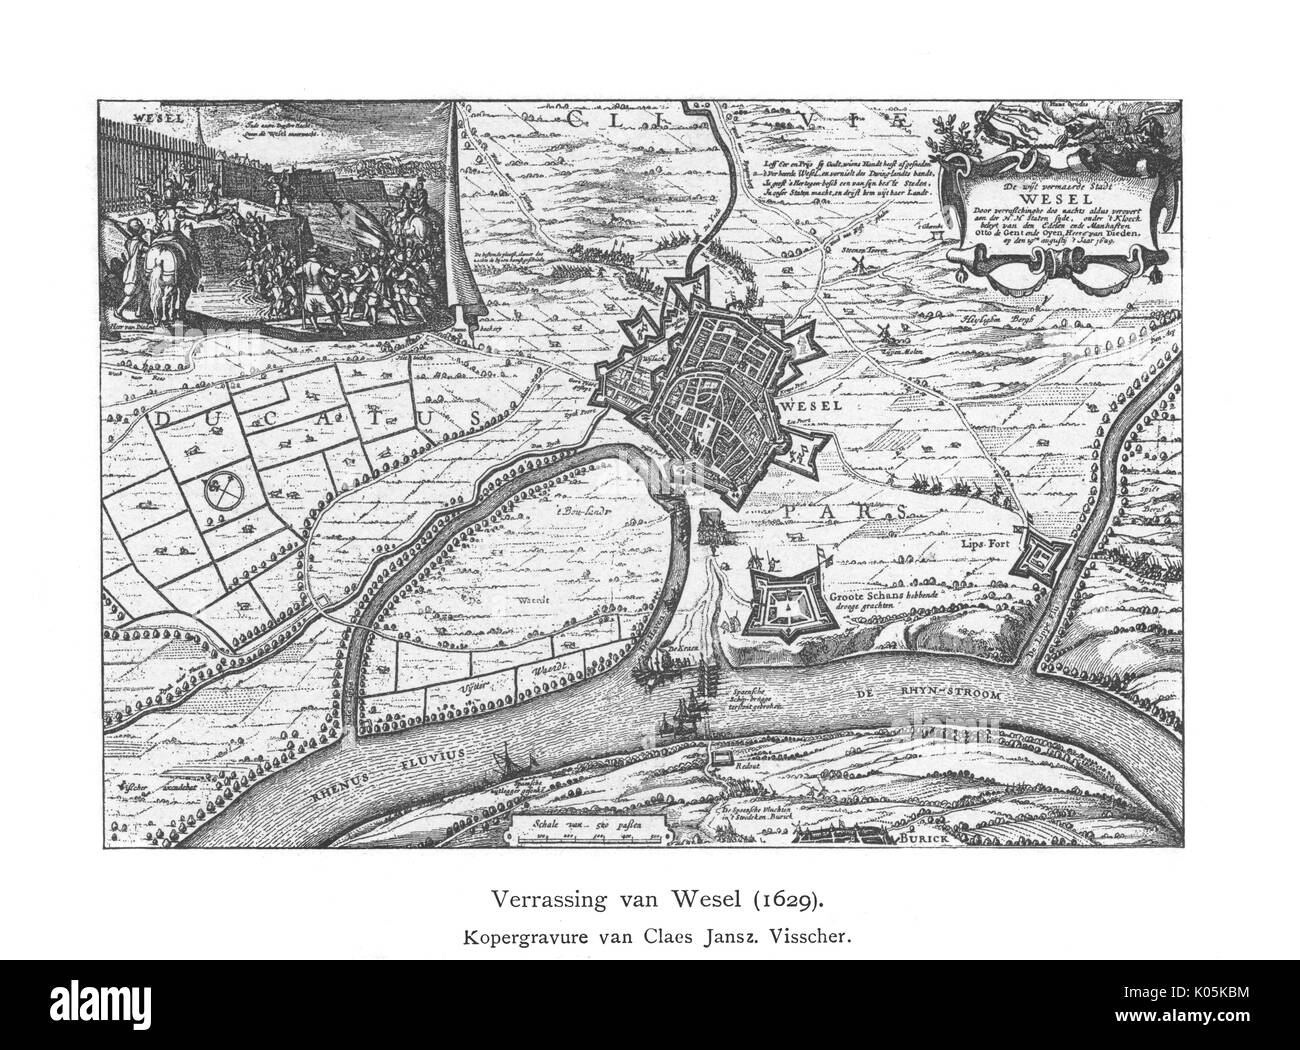 Plan of surprise attack on  Wesel         Date: 1629 - Stock Image